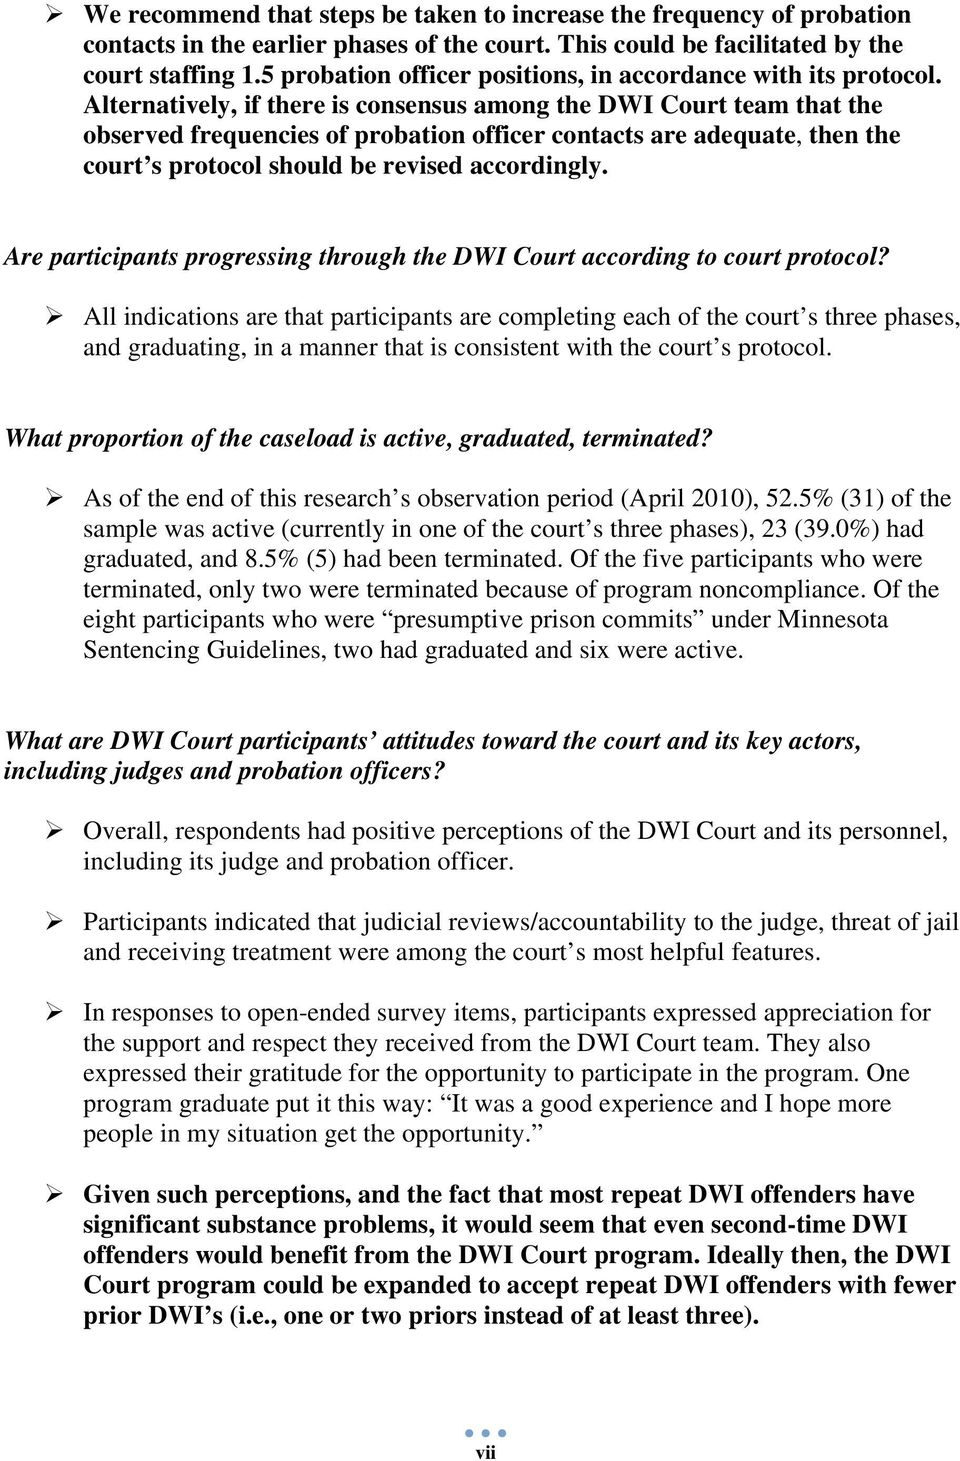 Alternatively, if there is consensus among the DWI Court team that the observed frequencies of probation officer contacts are adequate, then the court s protocol should be revised accordingly.